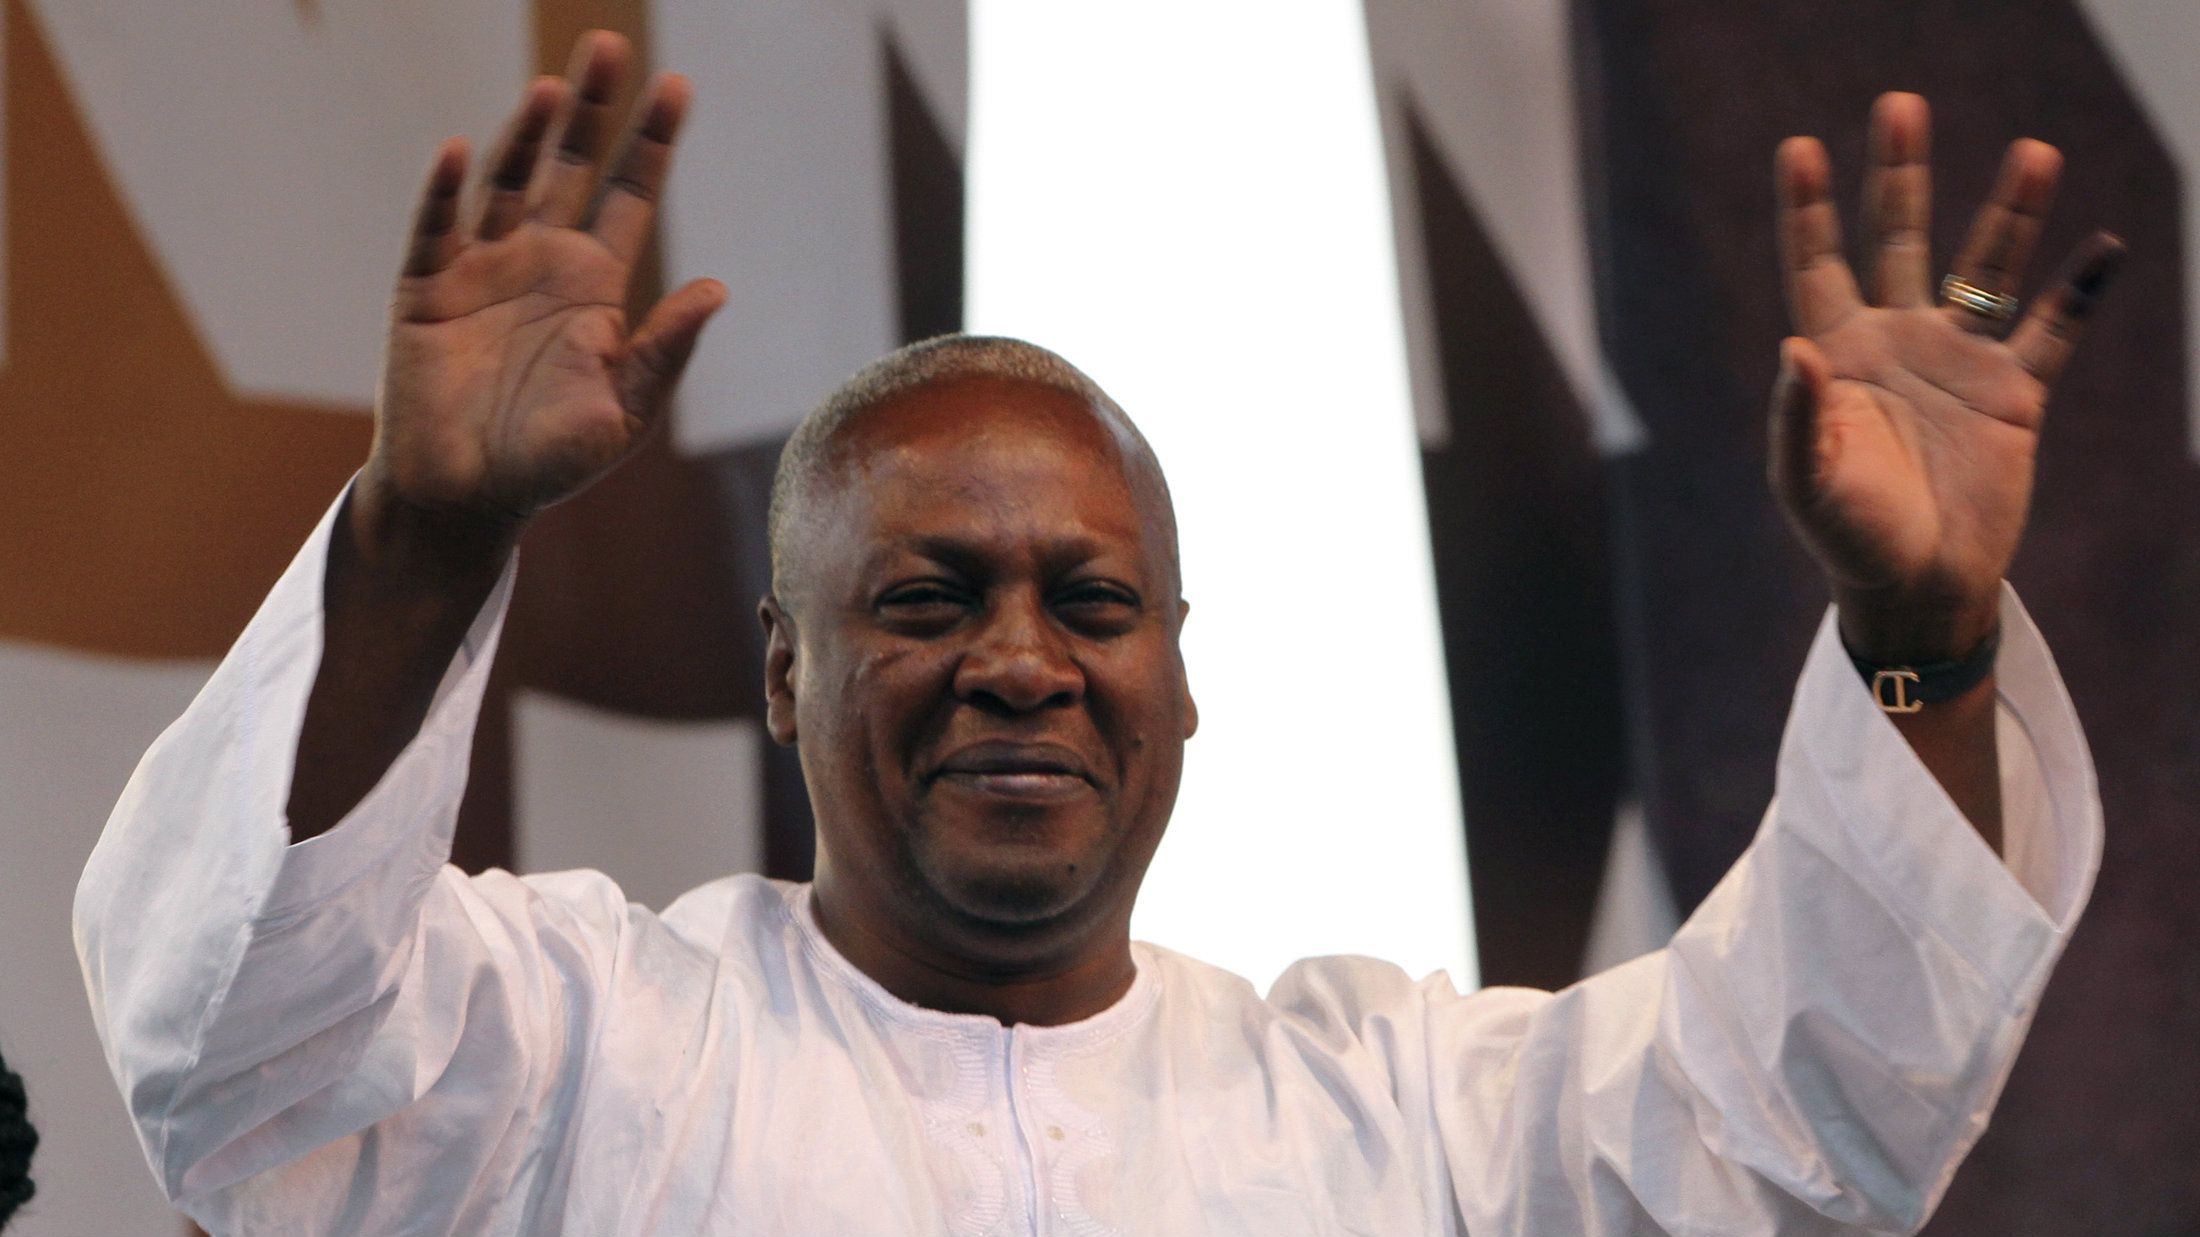 Ghanaian newly elected president John Dramani Mahama waves as he attends a victory rally to thank the supporters of NDC (National Democratic Congress), the party of the late president John Atta Mills, in Accra December 10, 2012.